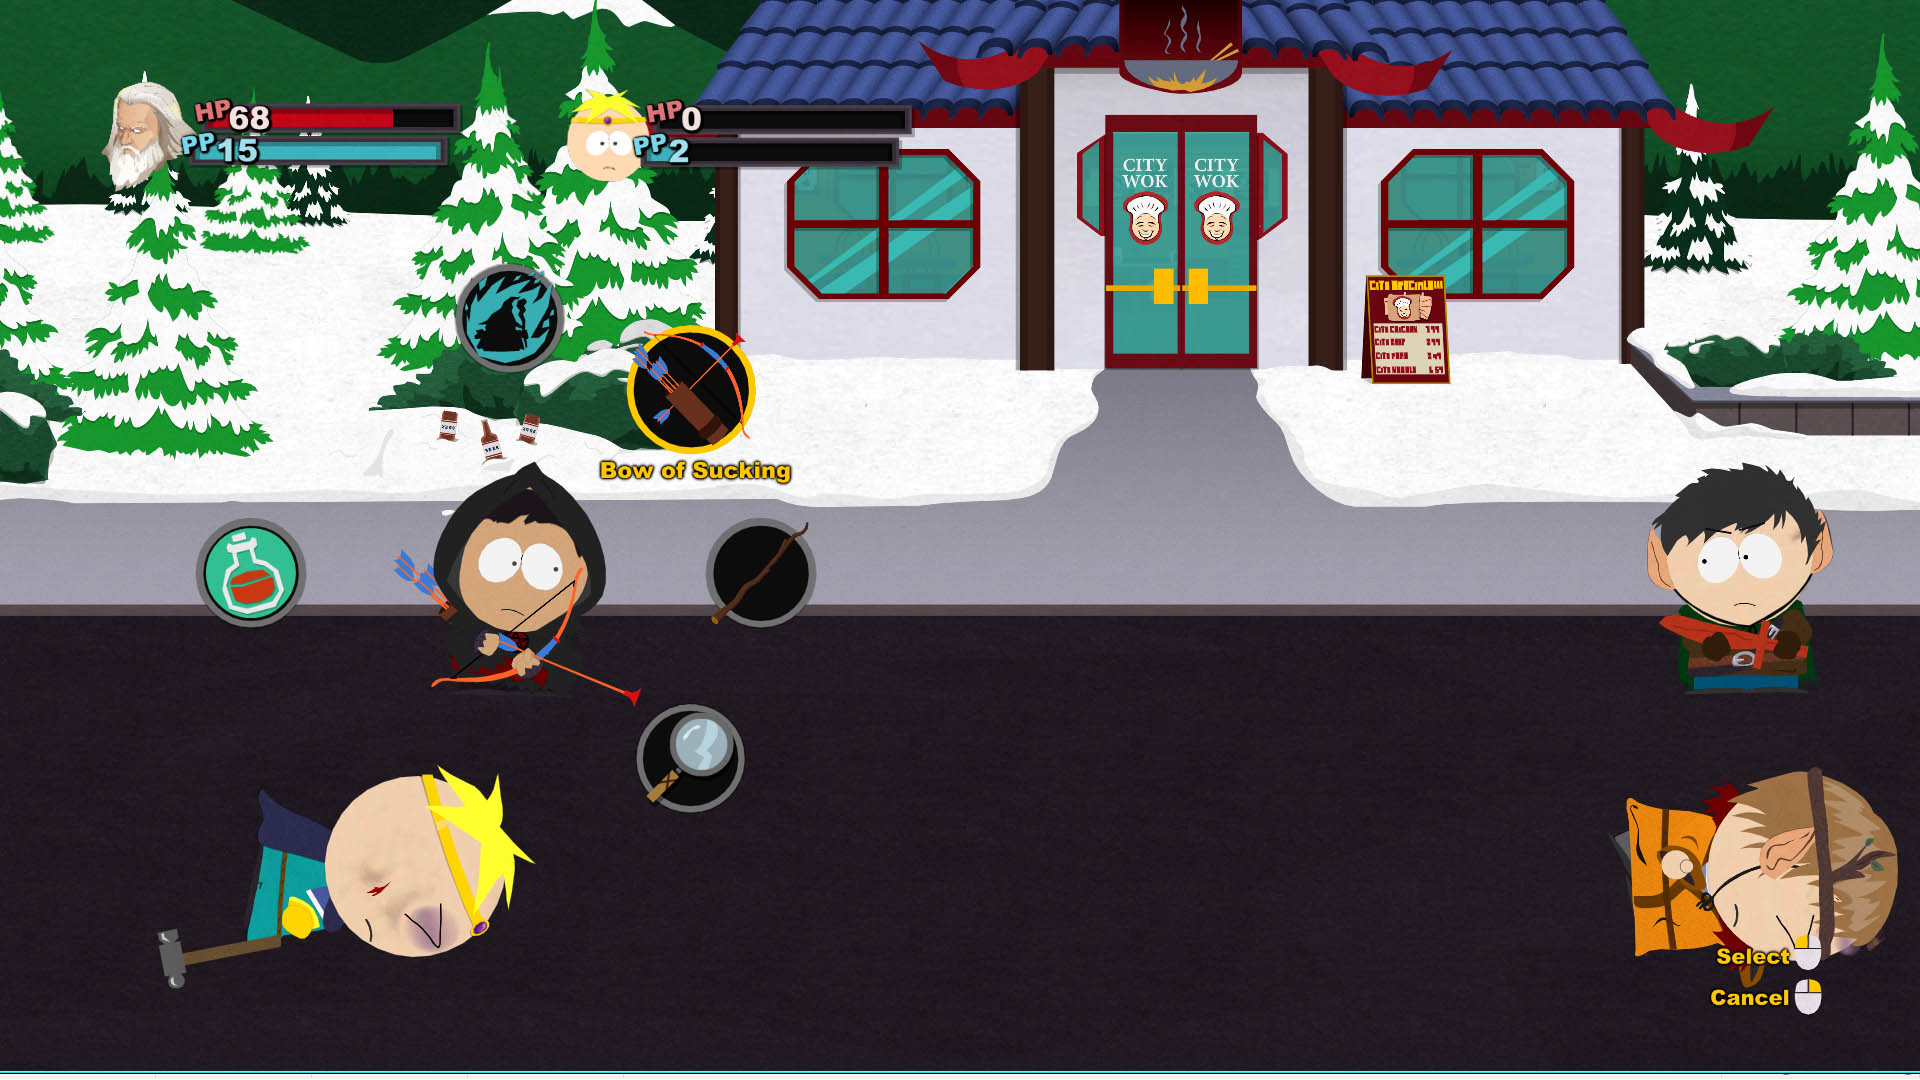 Butters KOed in Stick of Truth Combat